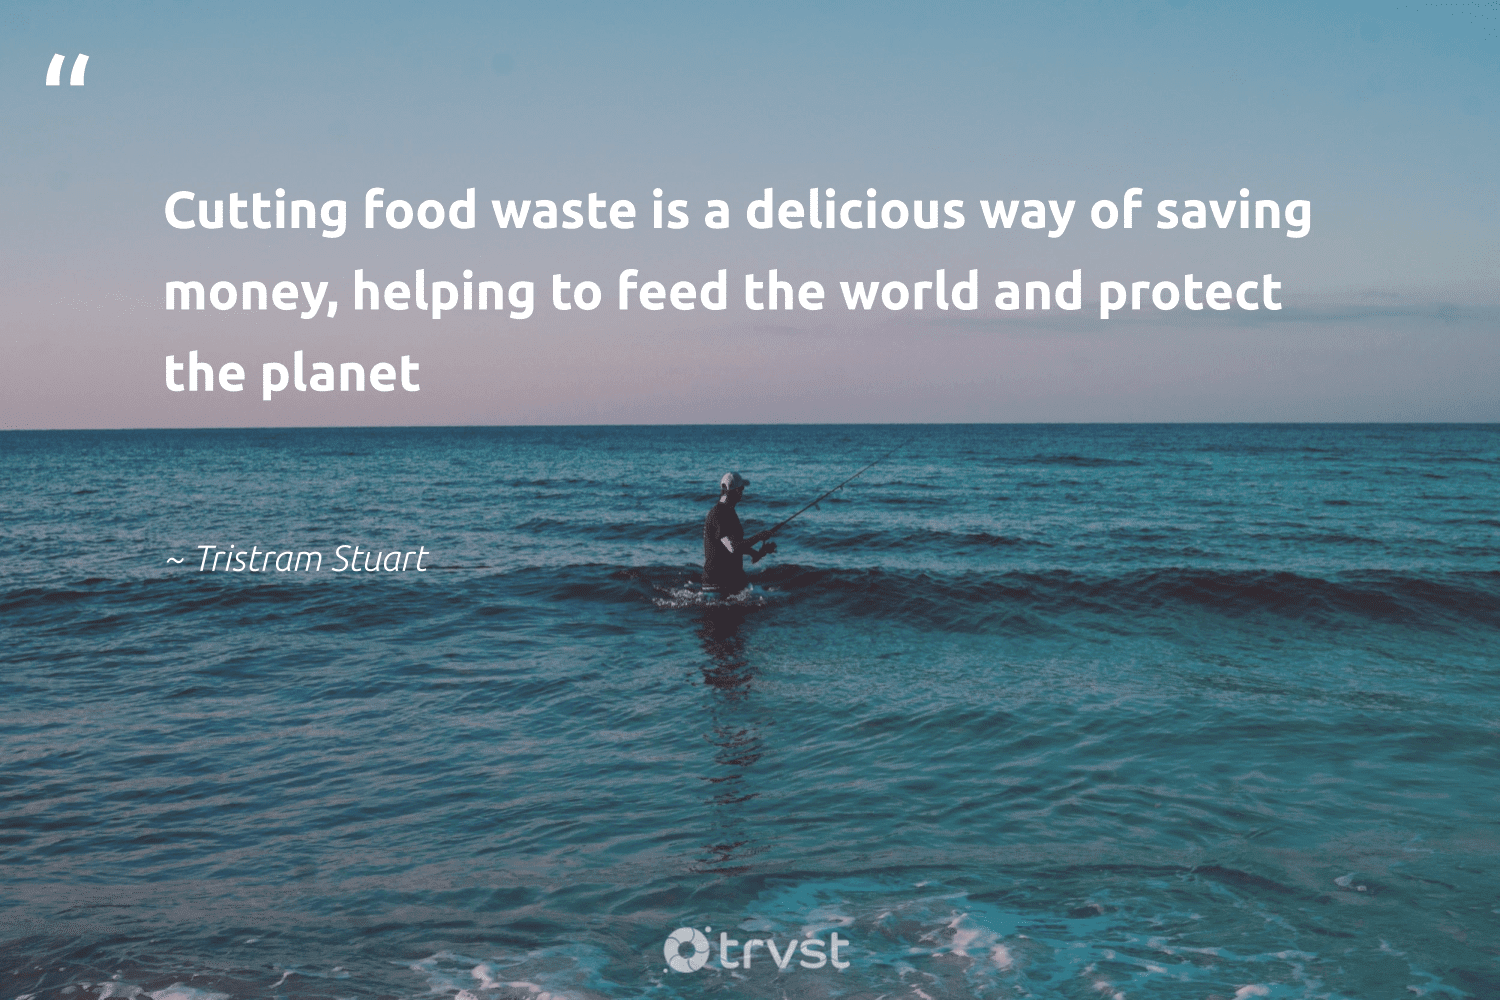 """""""Cutting food waste is a delicious way of saving money, helping to feed the world and protect the planet""""  - Tristram Stuart #trvst #quotes #foodwaste #waste #planet #food #fighthunger #loveourplanet #bethechange #dotherightthing #endhunger #greenliving"""